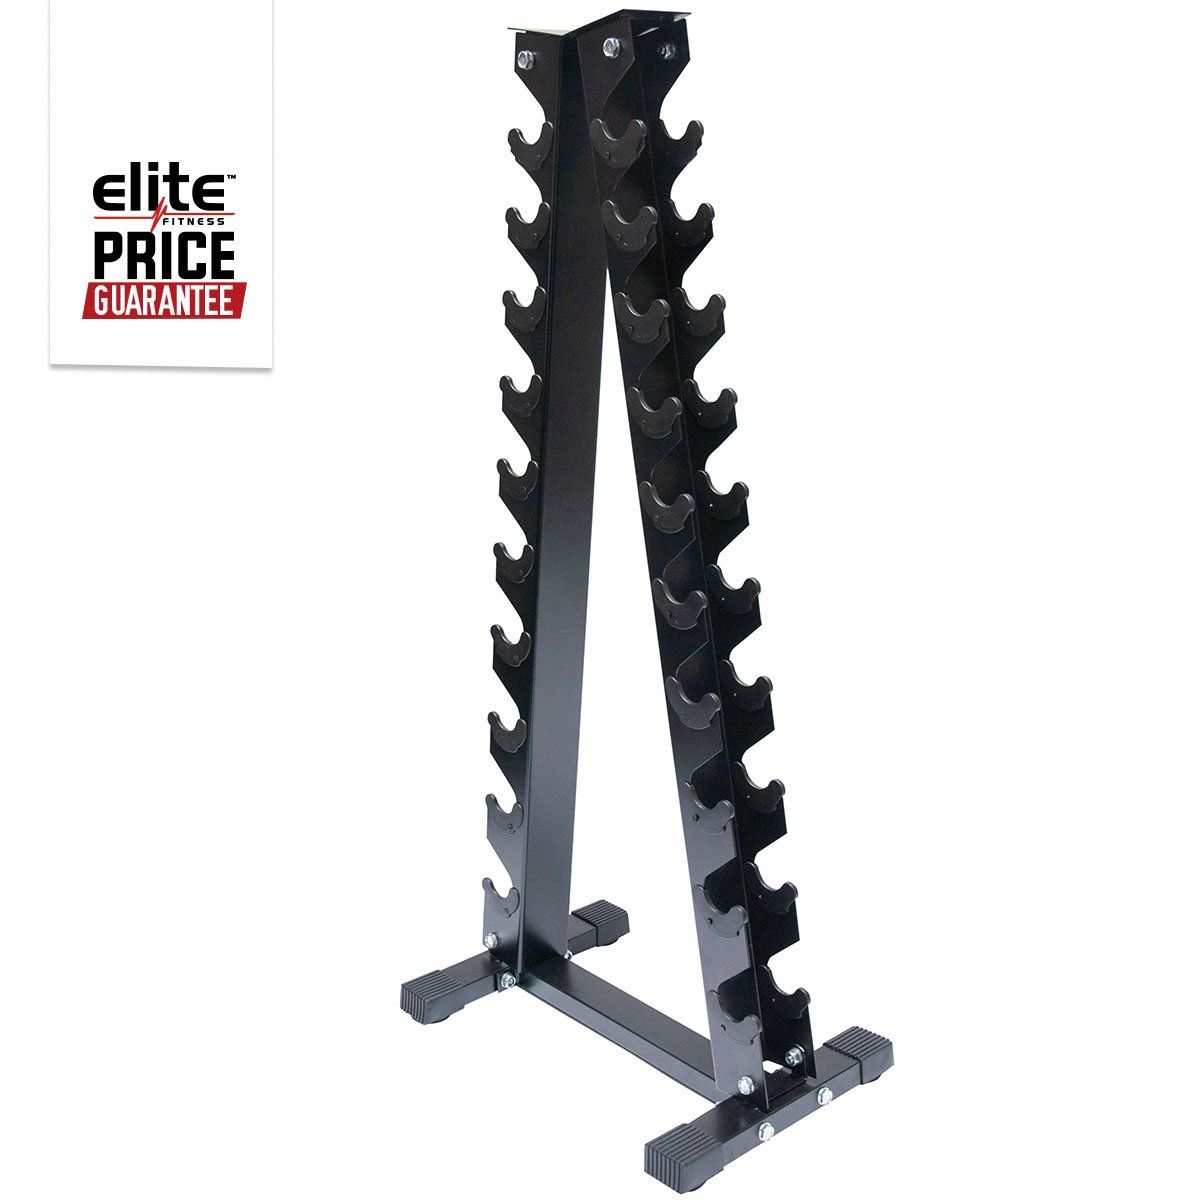 Xtreme Elite Vinyl Dumbbell Rack Easy And Convenient Storage The Heavy Duty Xtreme Elite Vinyl Dumbbell Rack Holds Up To 1 10k In 2020 Dumbbell Rack Dumbbell Vinyl